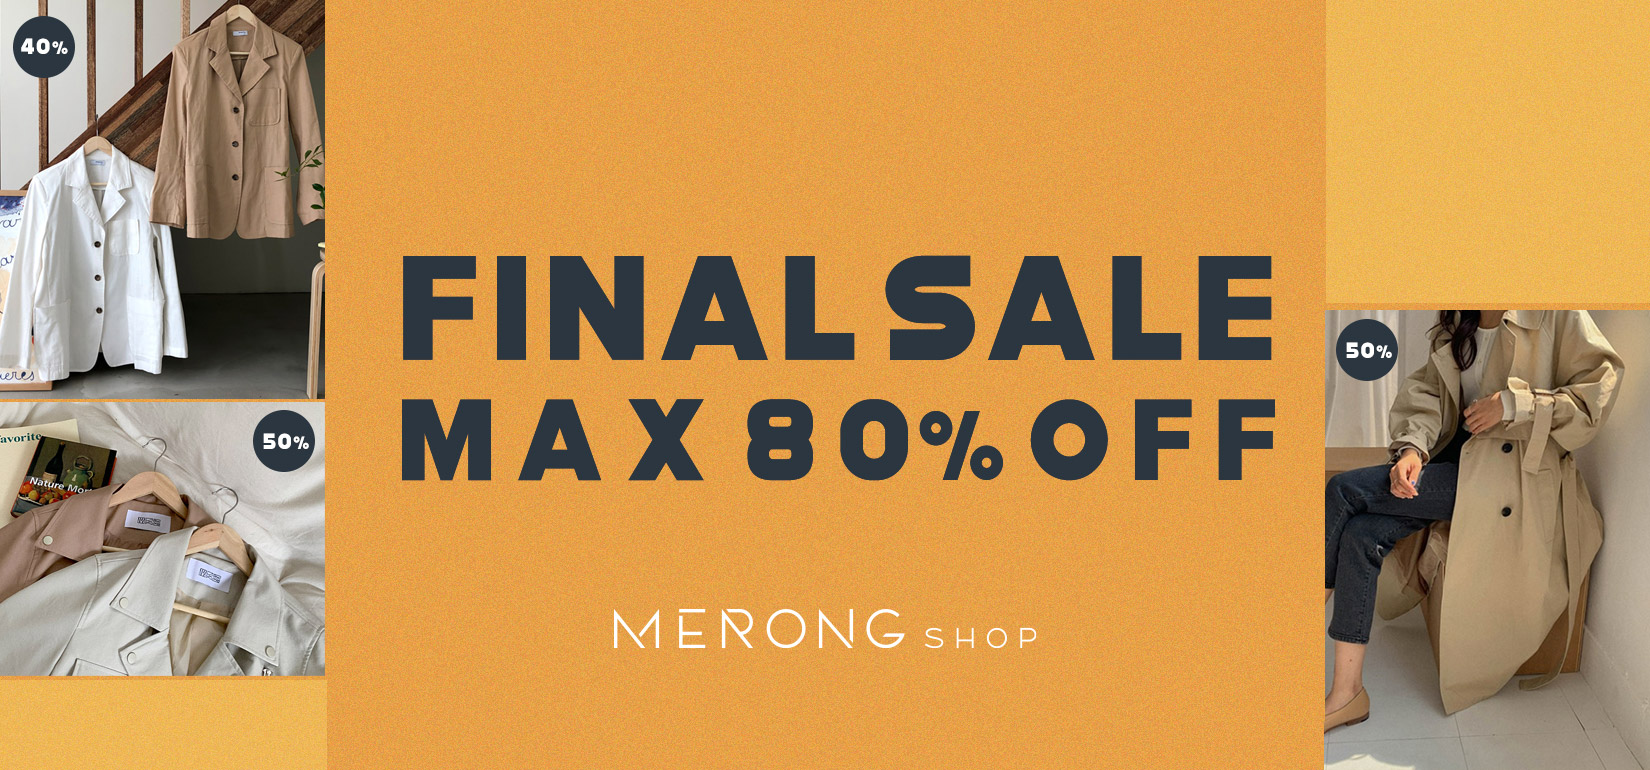 FINAL SALE ! UP TO 80% OFF!